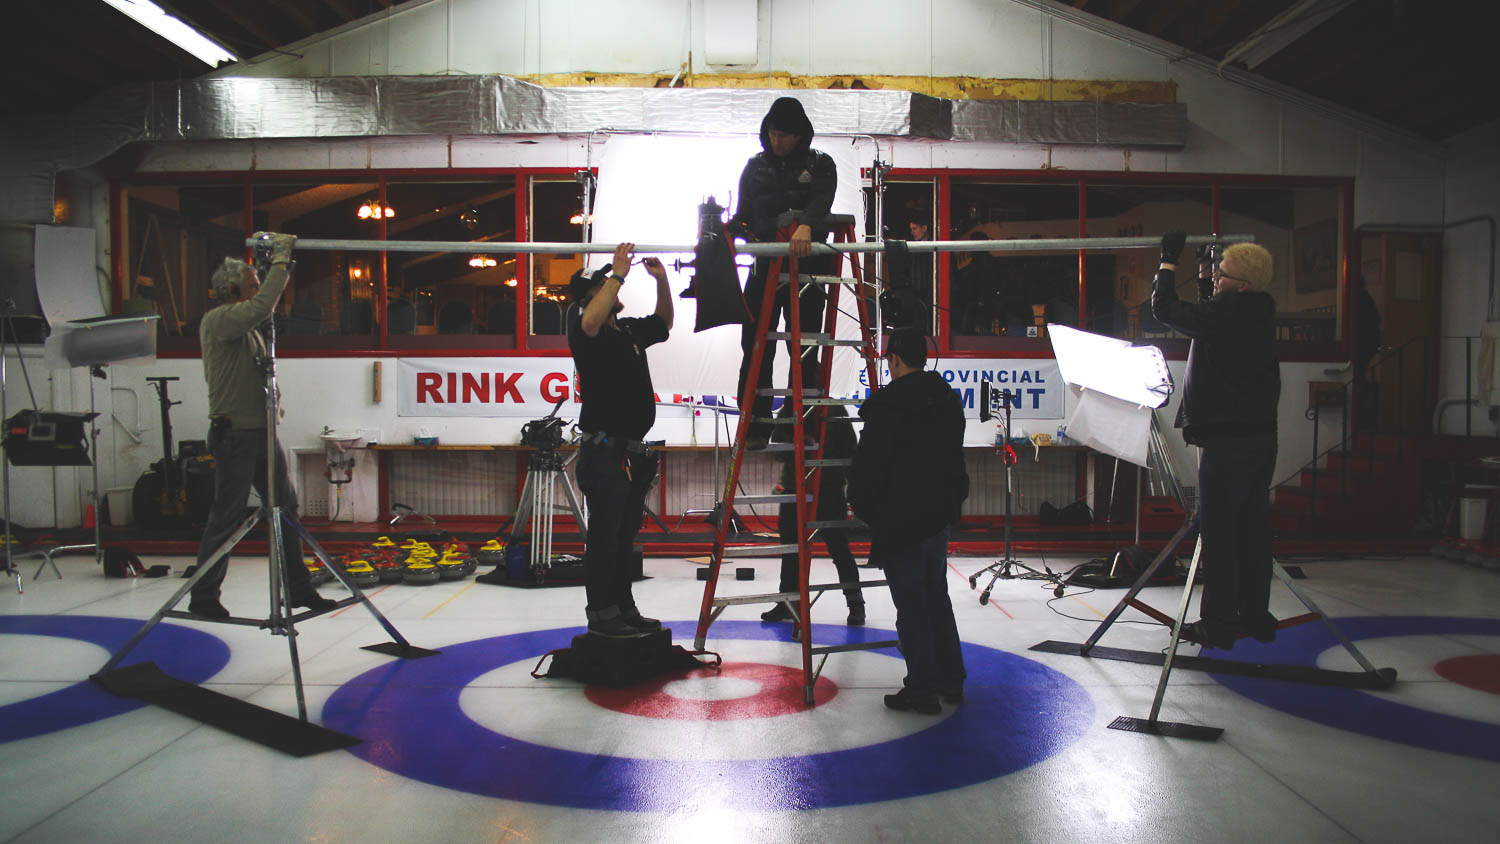 During the reshoot of a scene from the film Sweeping Forward of the Director Patricia McDowell, preparation for an interior scene of the ice ring in a curling tournament.